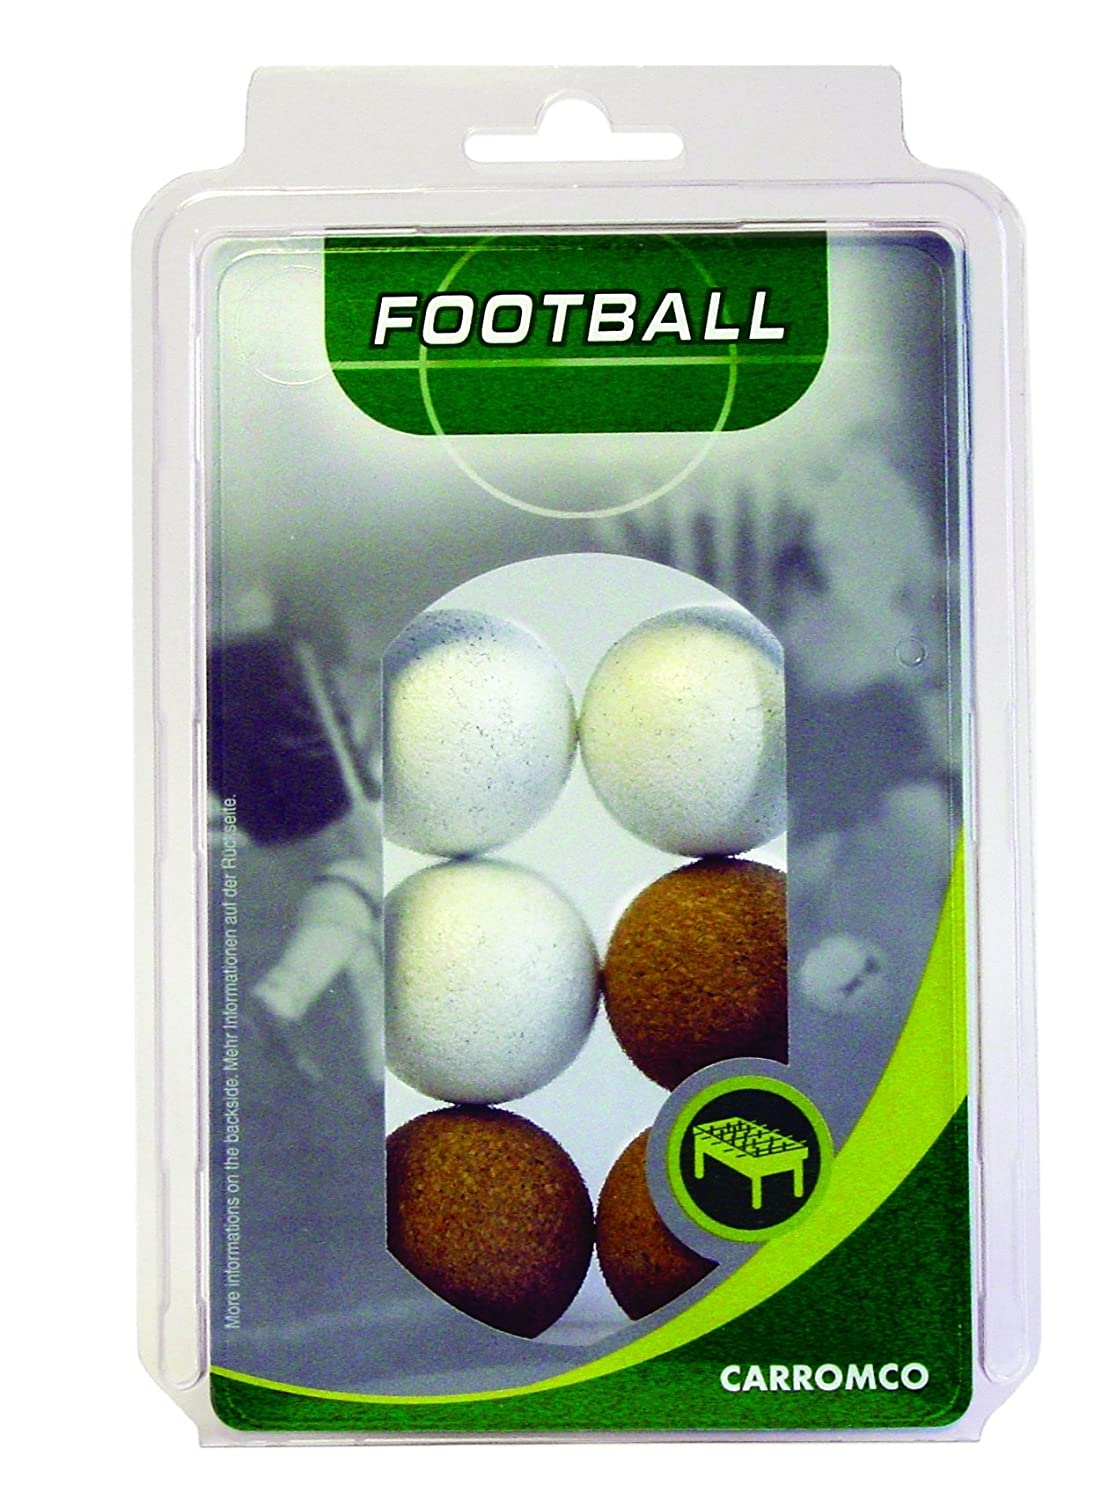 Carromco Table Football Balls 3x Natural Cork / 3x White Cork 62306